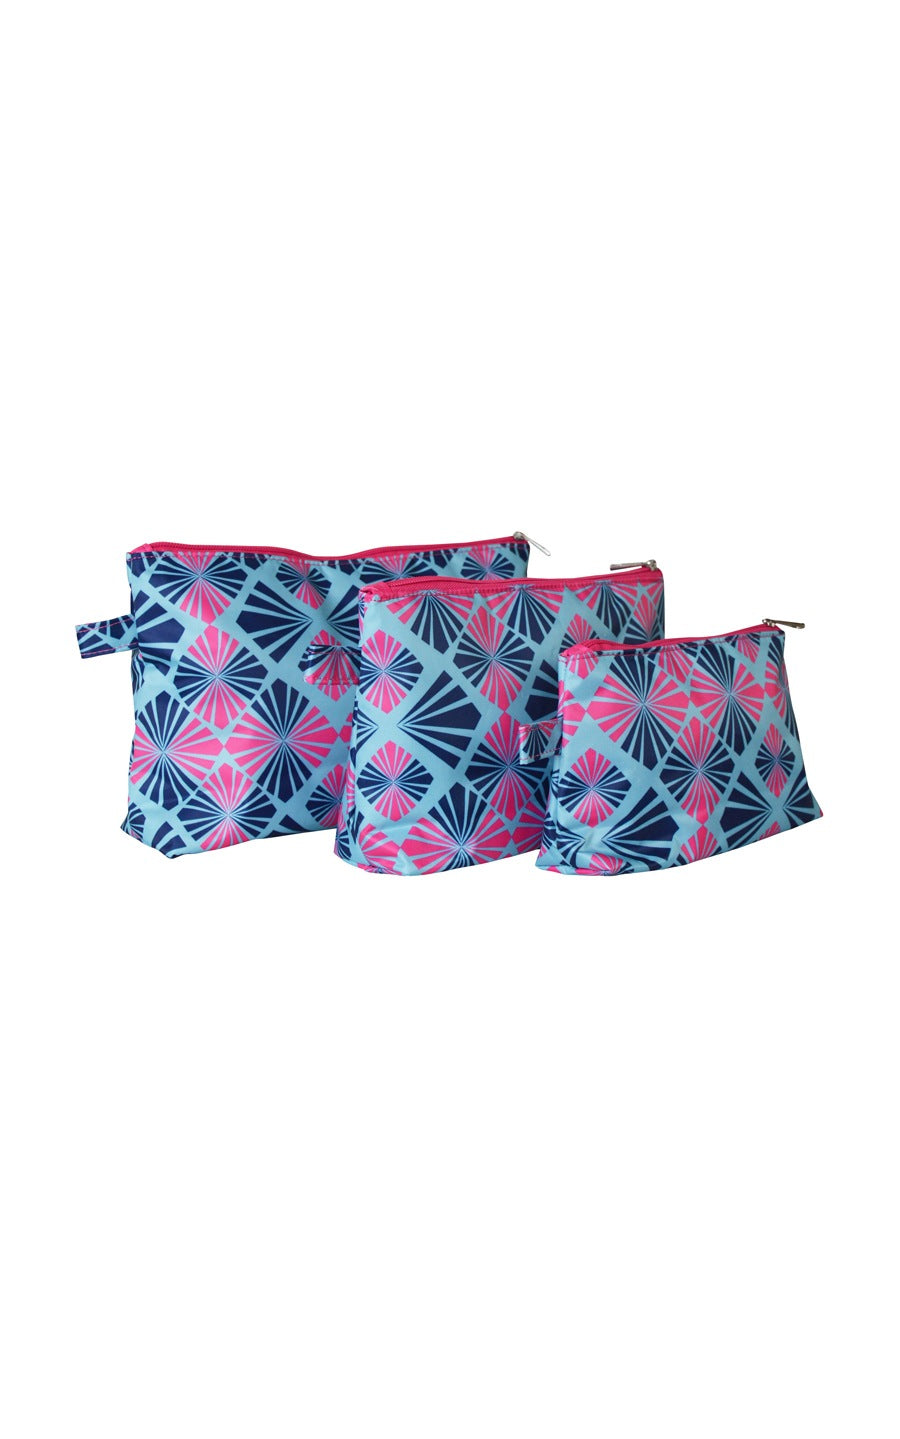 All For Color-Summer Rays 3 Piece Cosmetic Bag Set - FINAL SALE-Cosmetic Cases